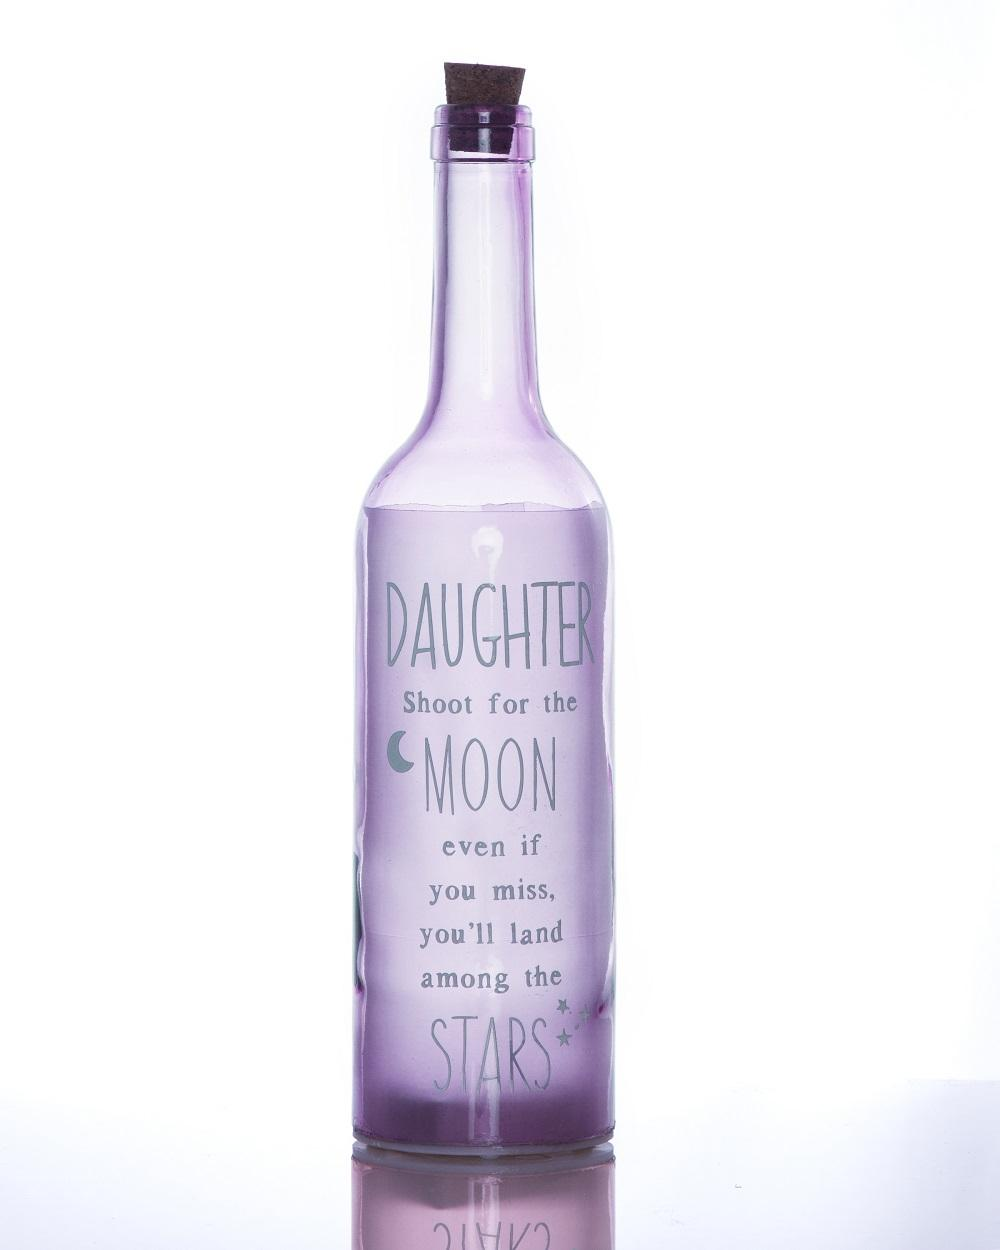 Daughter Starlight Bottle Light Up Sentimental Message Bottles